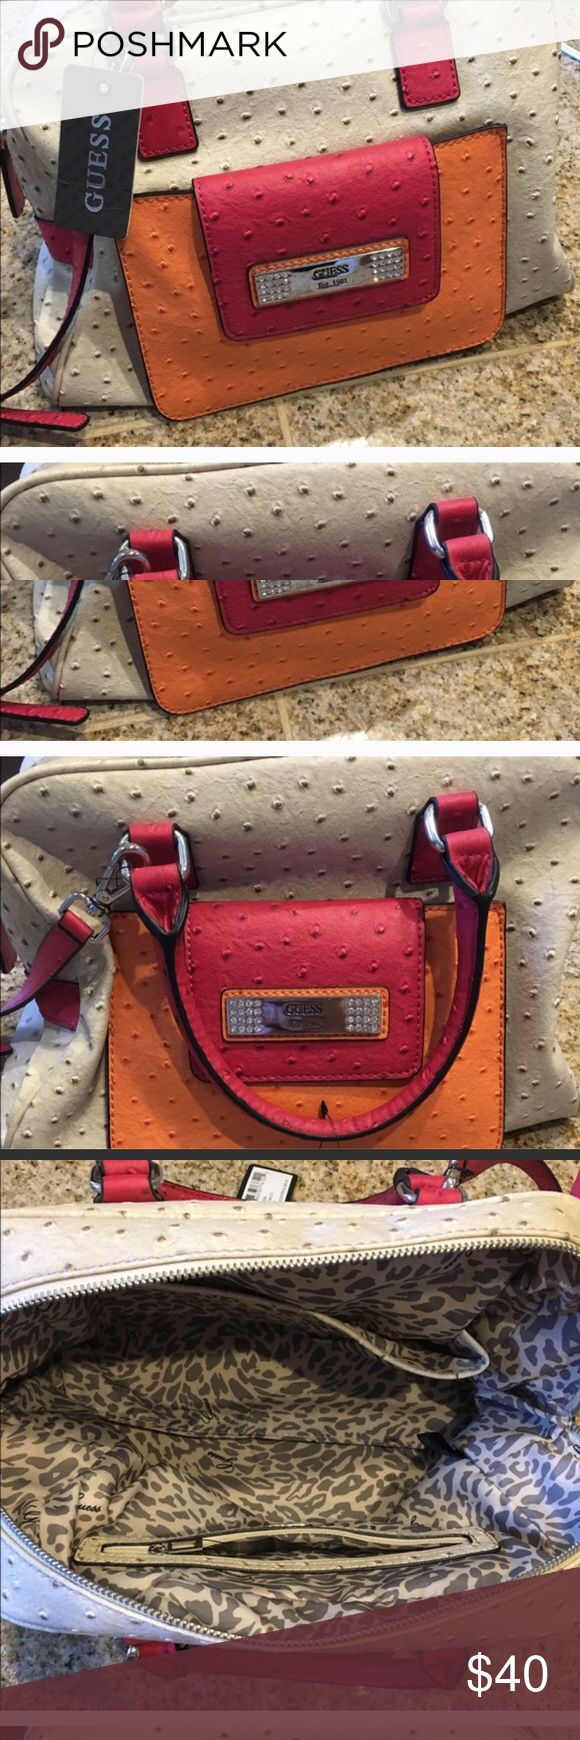 Guess Color Block Purse (Tag still on) Beautiful, color block purse from Guess. Medium/large sized bag with the tag still on. I repeat::Never once used! Leopard interior/lining. It was a Graduation gift, I still consider keeping it but it's not exactly my style. Get it before I change my mind!!! Guess Bags